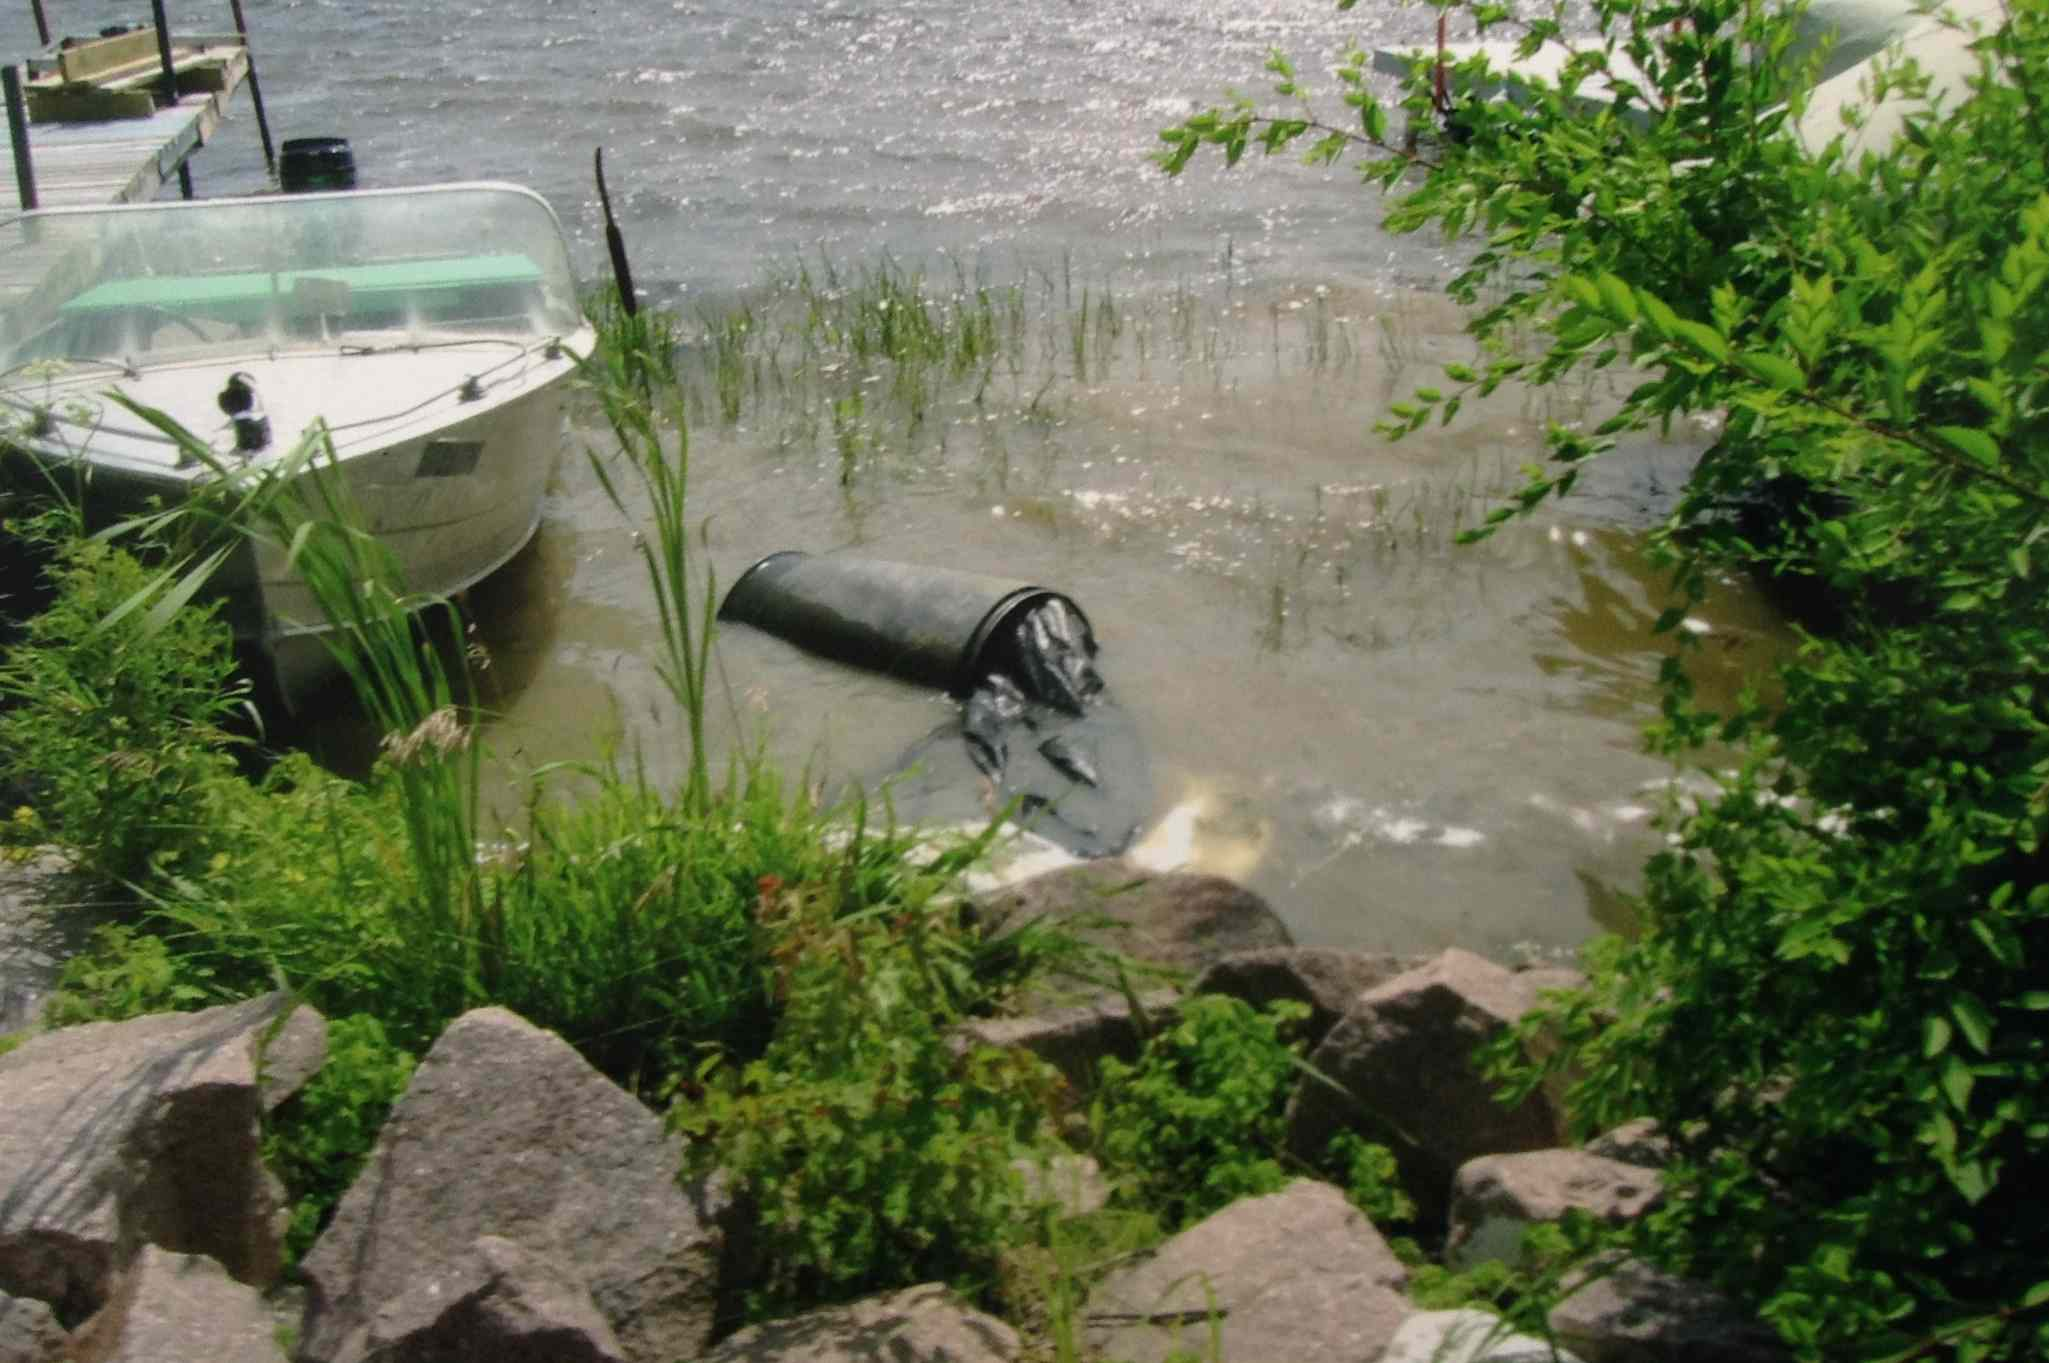 The barrel discovery scene as RCMP found it on the Lee River on July 23, 2008.